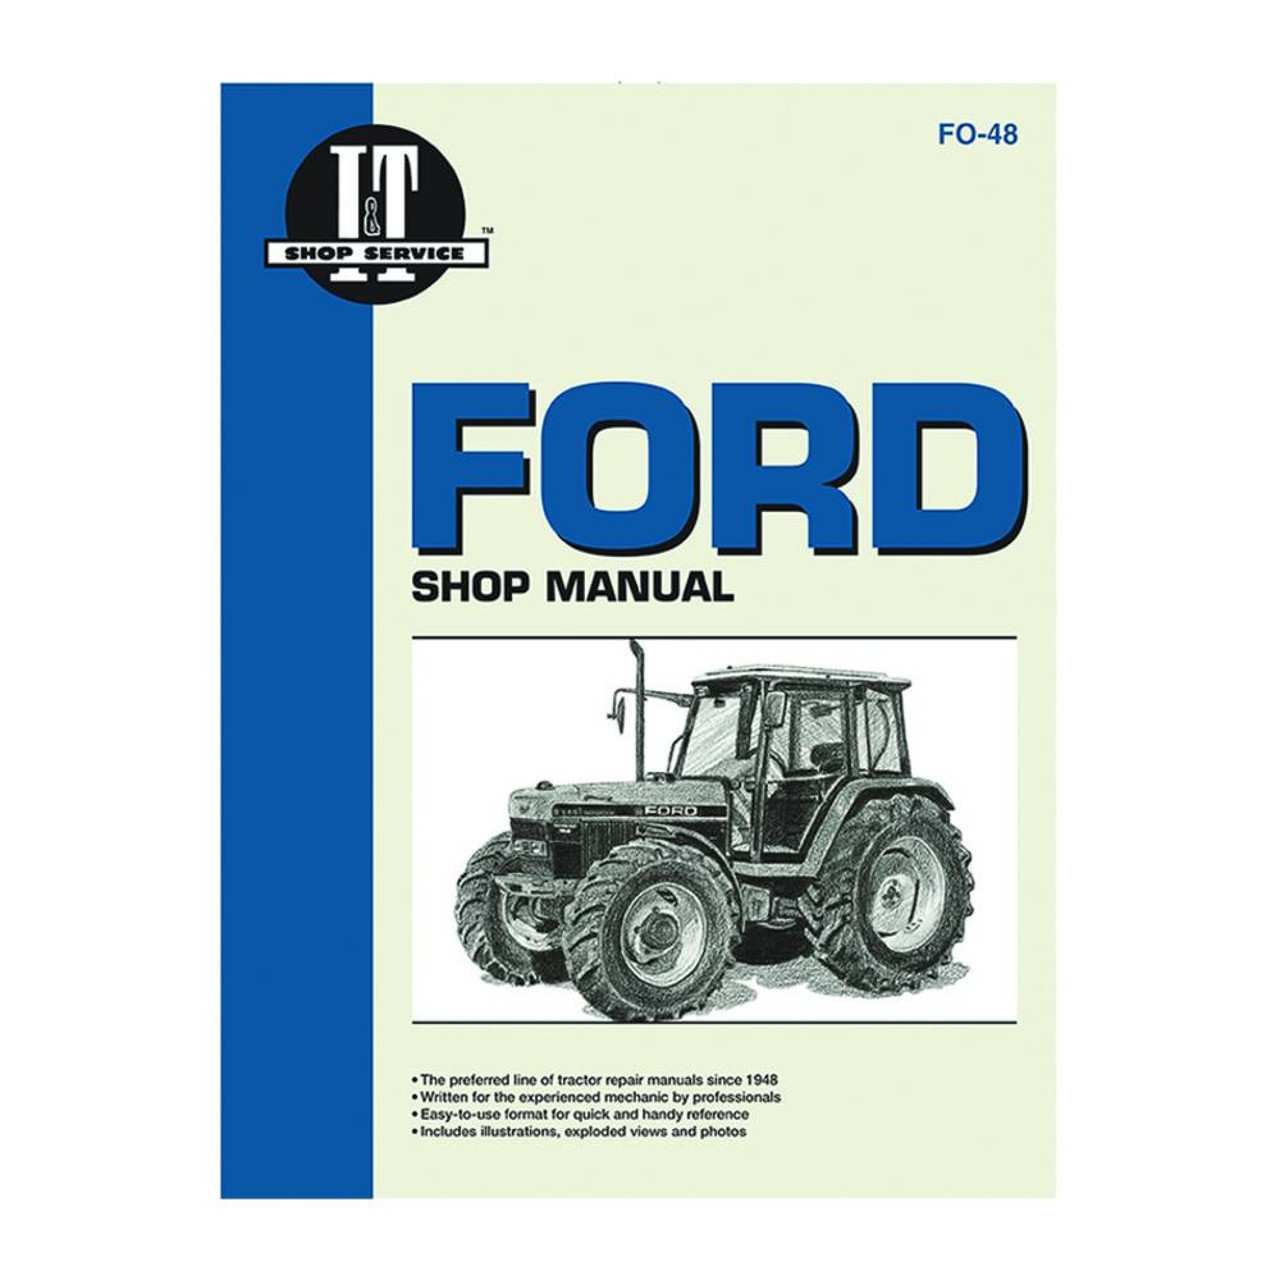 small resolution of ford tractor wiring harness 7740 wiring diagram files ford tractor wiring harness 7740